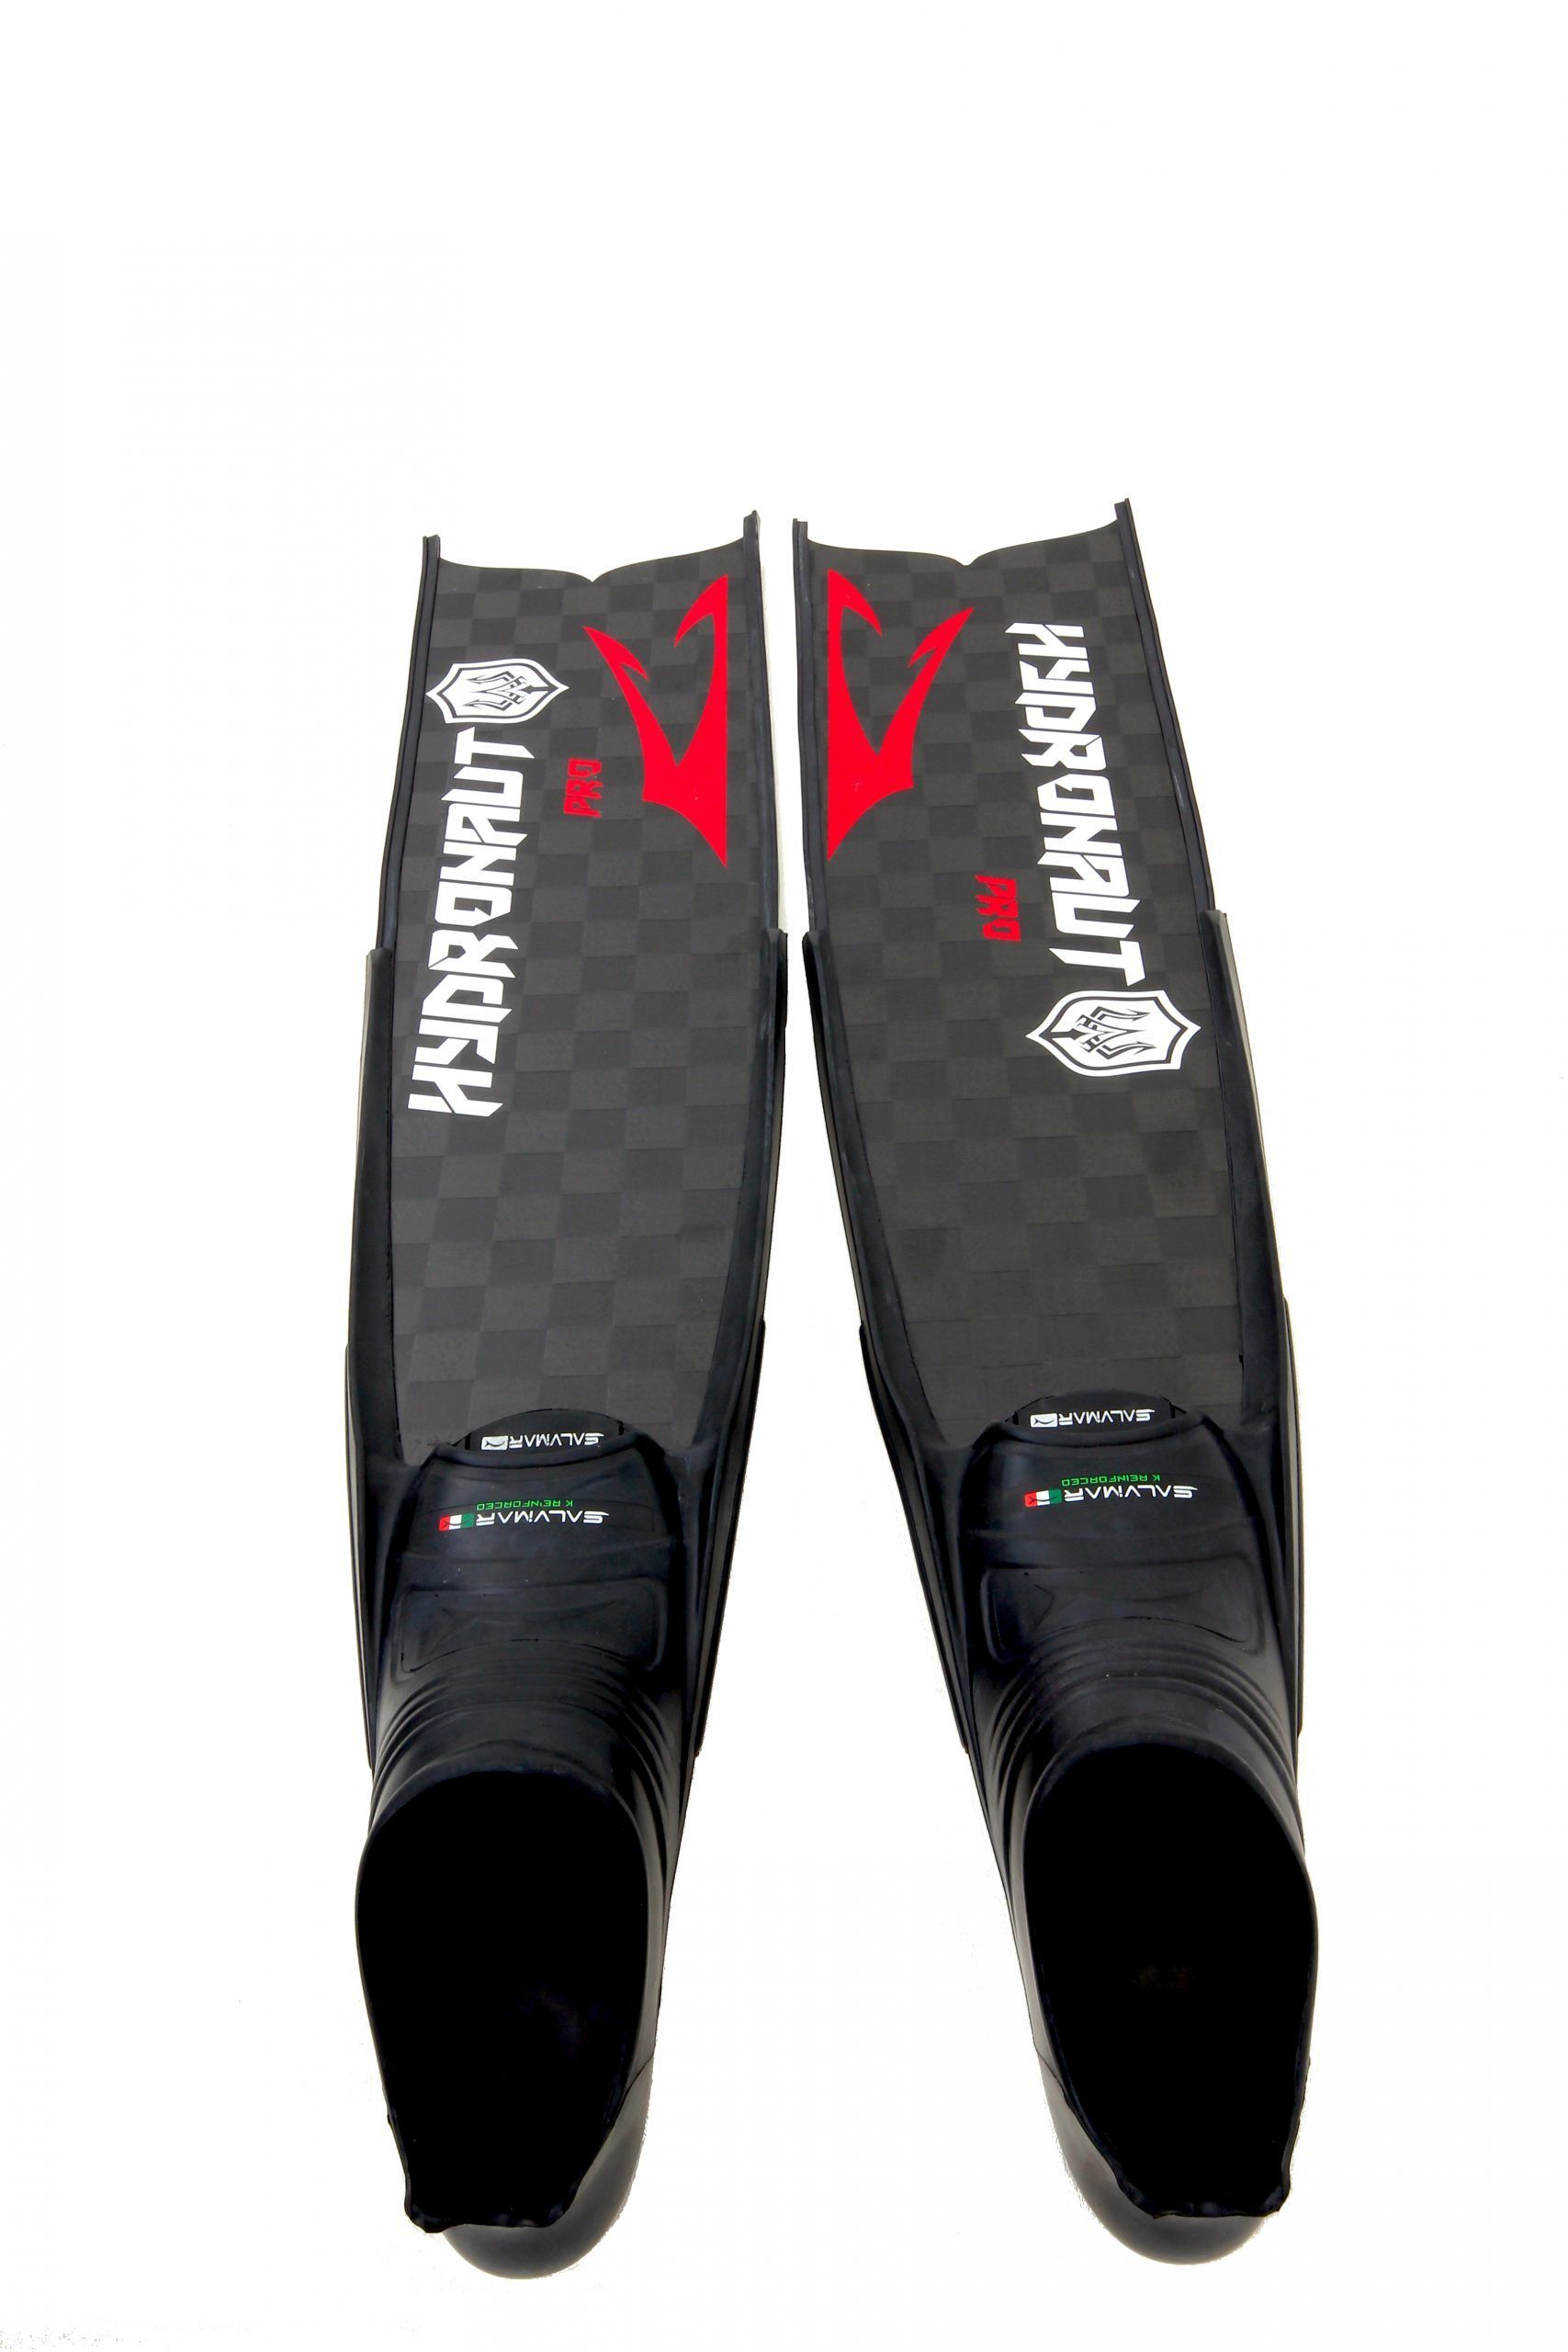 Hydronaut Carbon Fins Back View